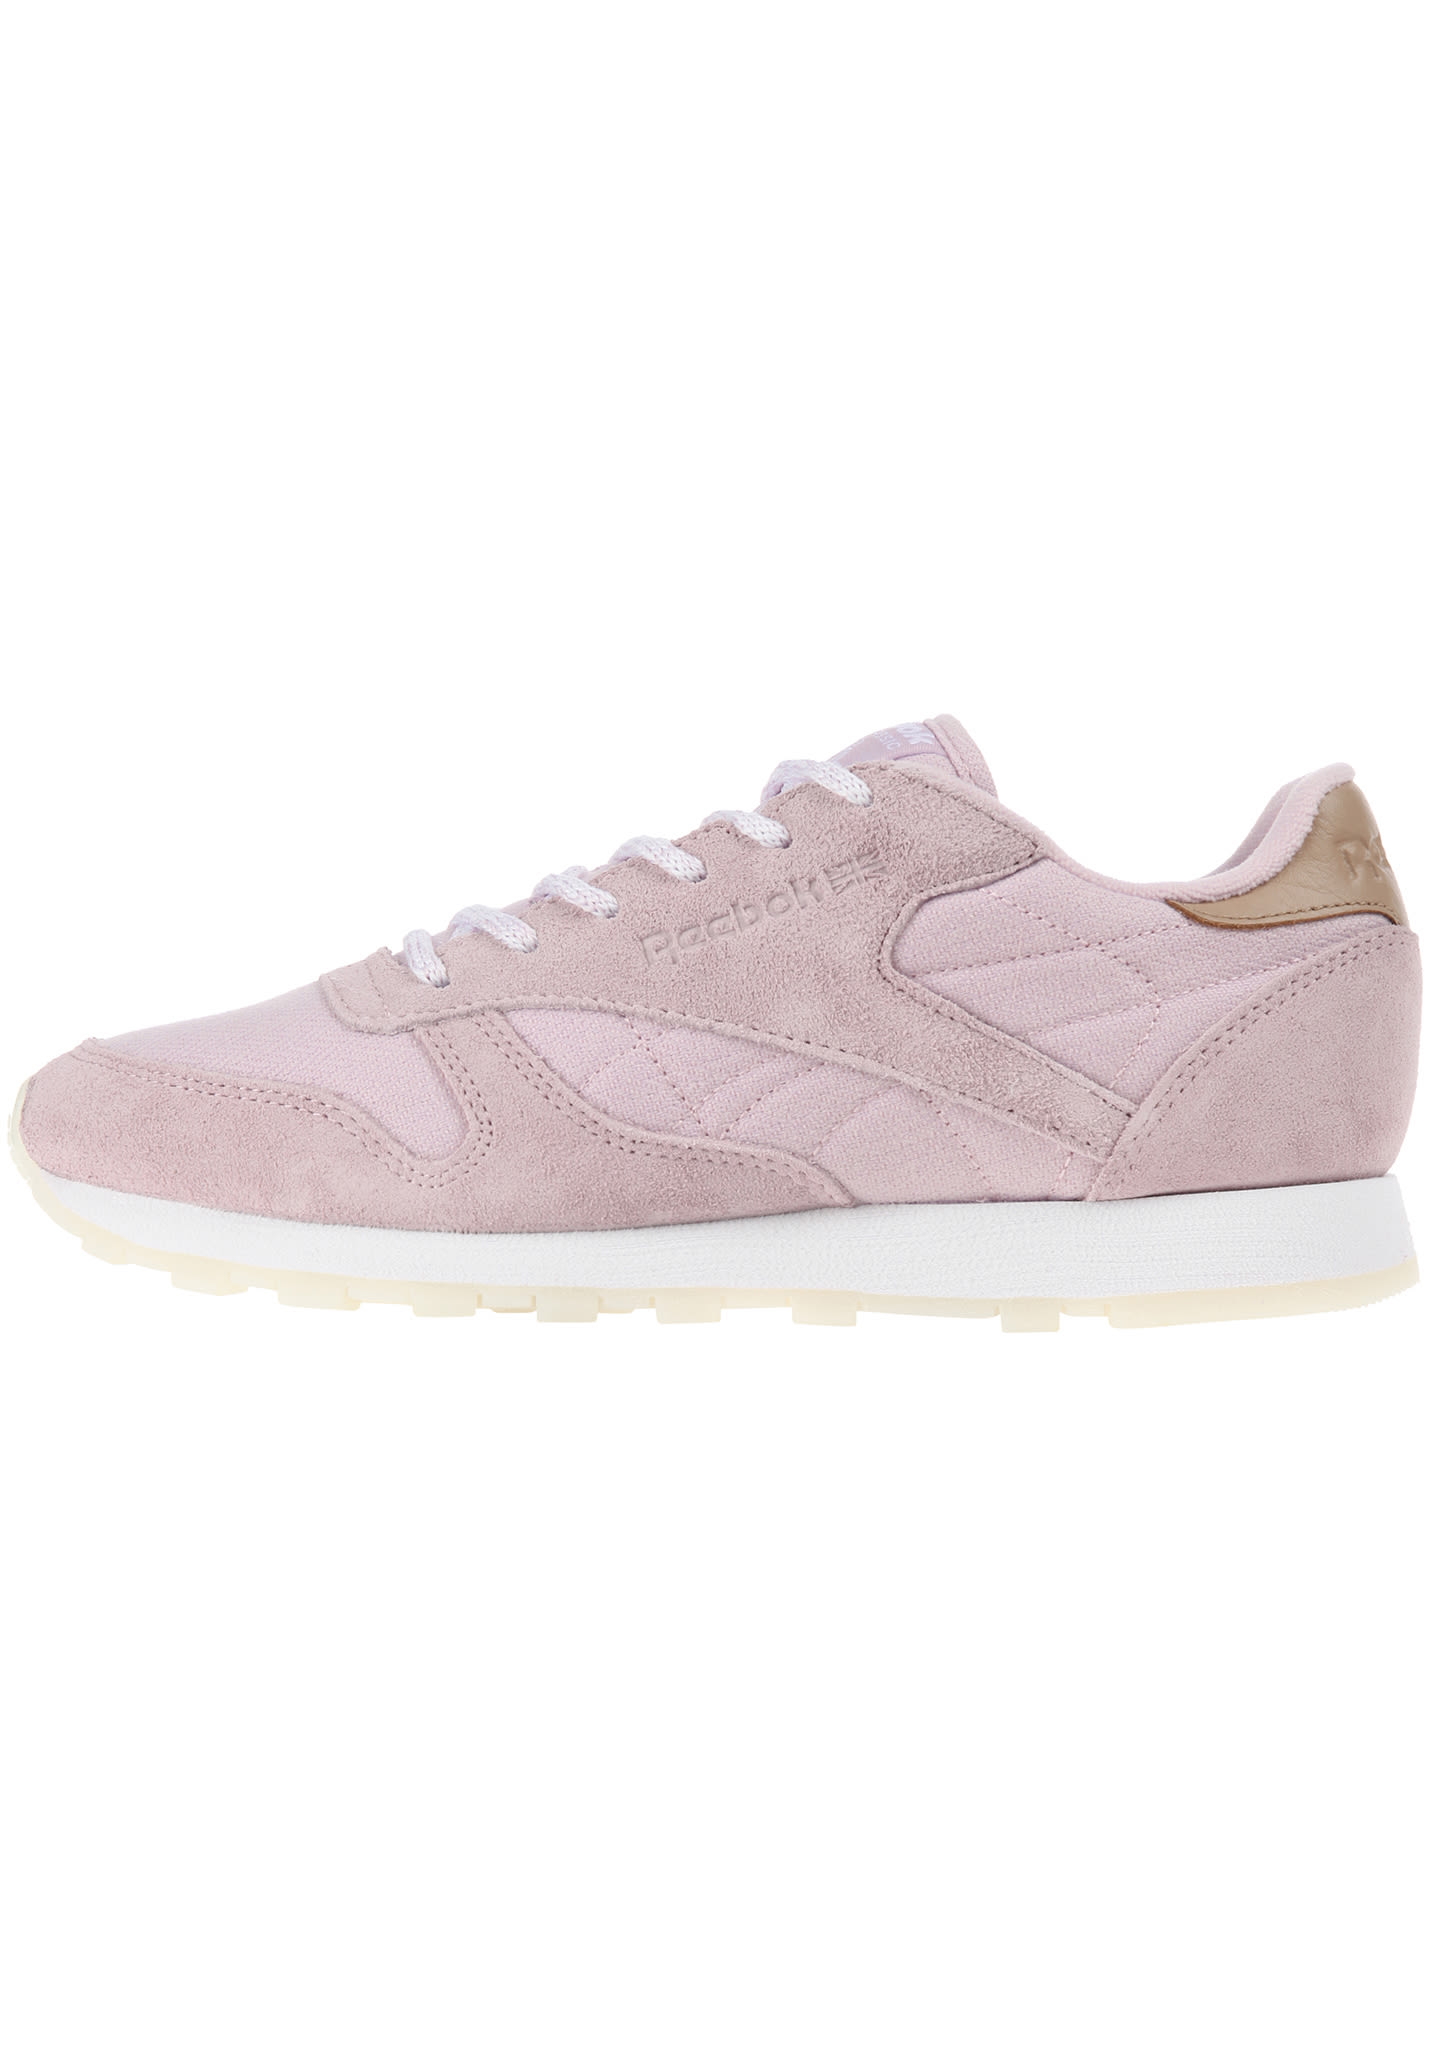 19c46711eff Reebok Classic Lthr Sea-Worn - Sneakers voor Dames - Roze - Planet Sports